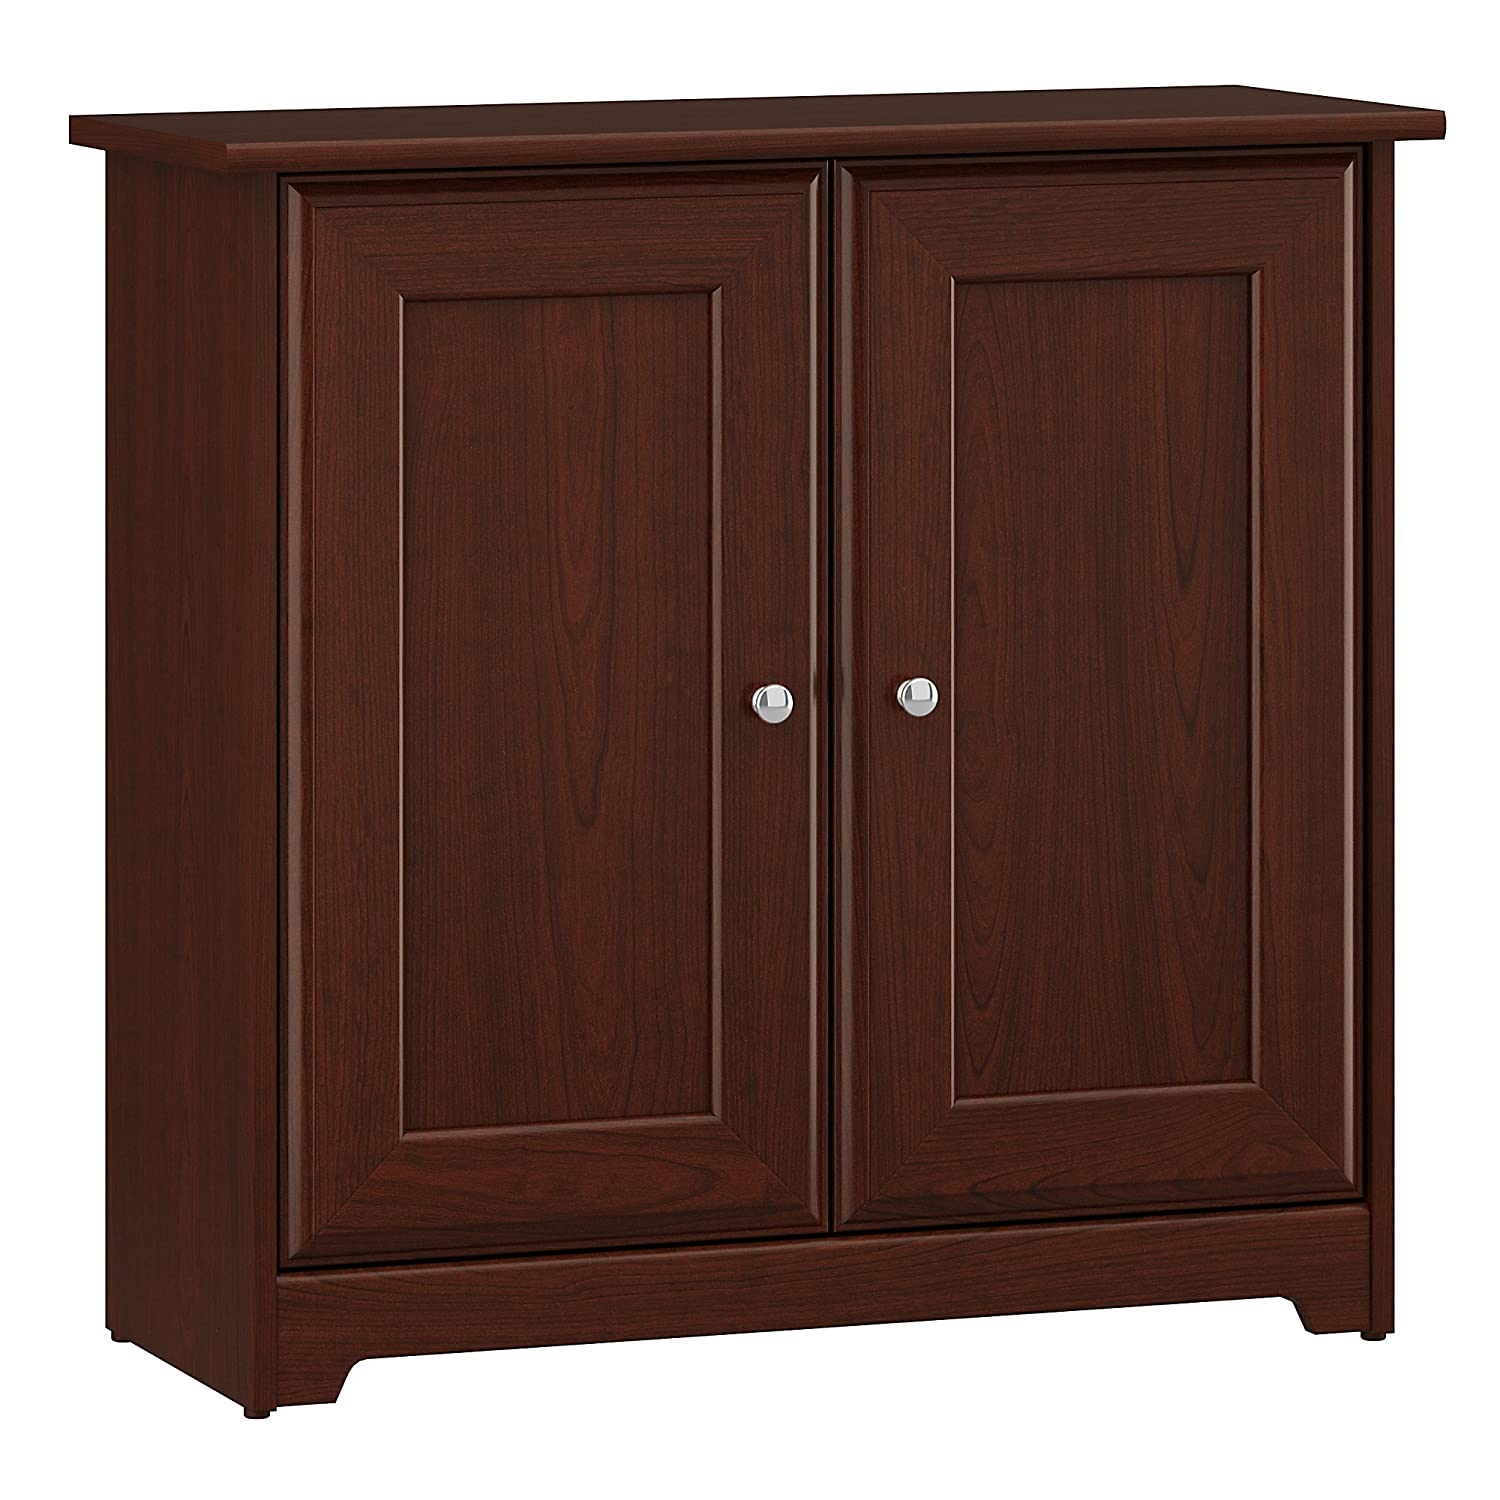 Bush Furniture Cabot Small Storage Cabinet with Doors in Espresso Oak Bush Industries WC31896-03